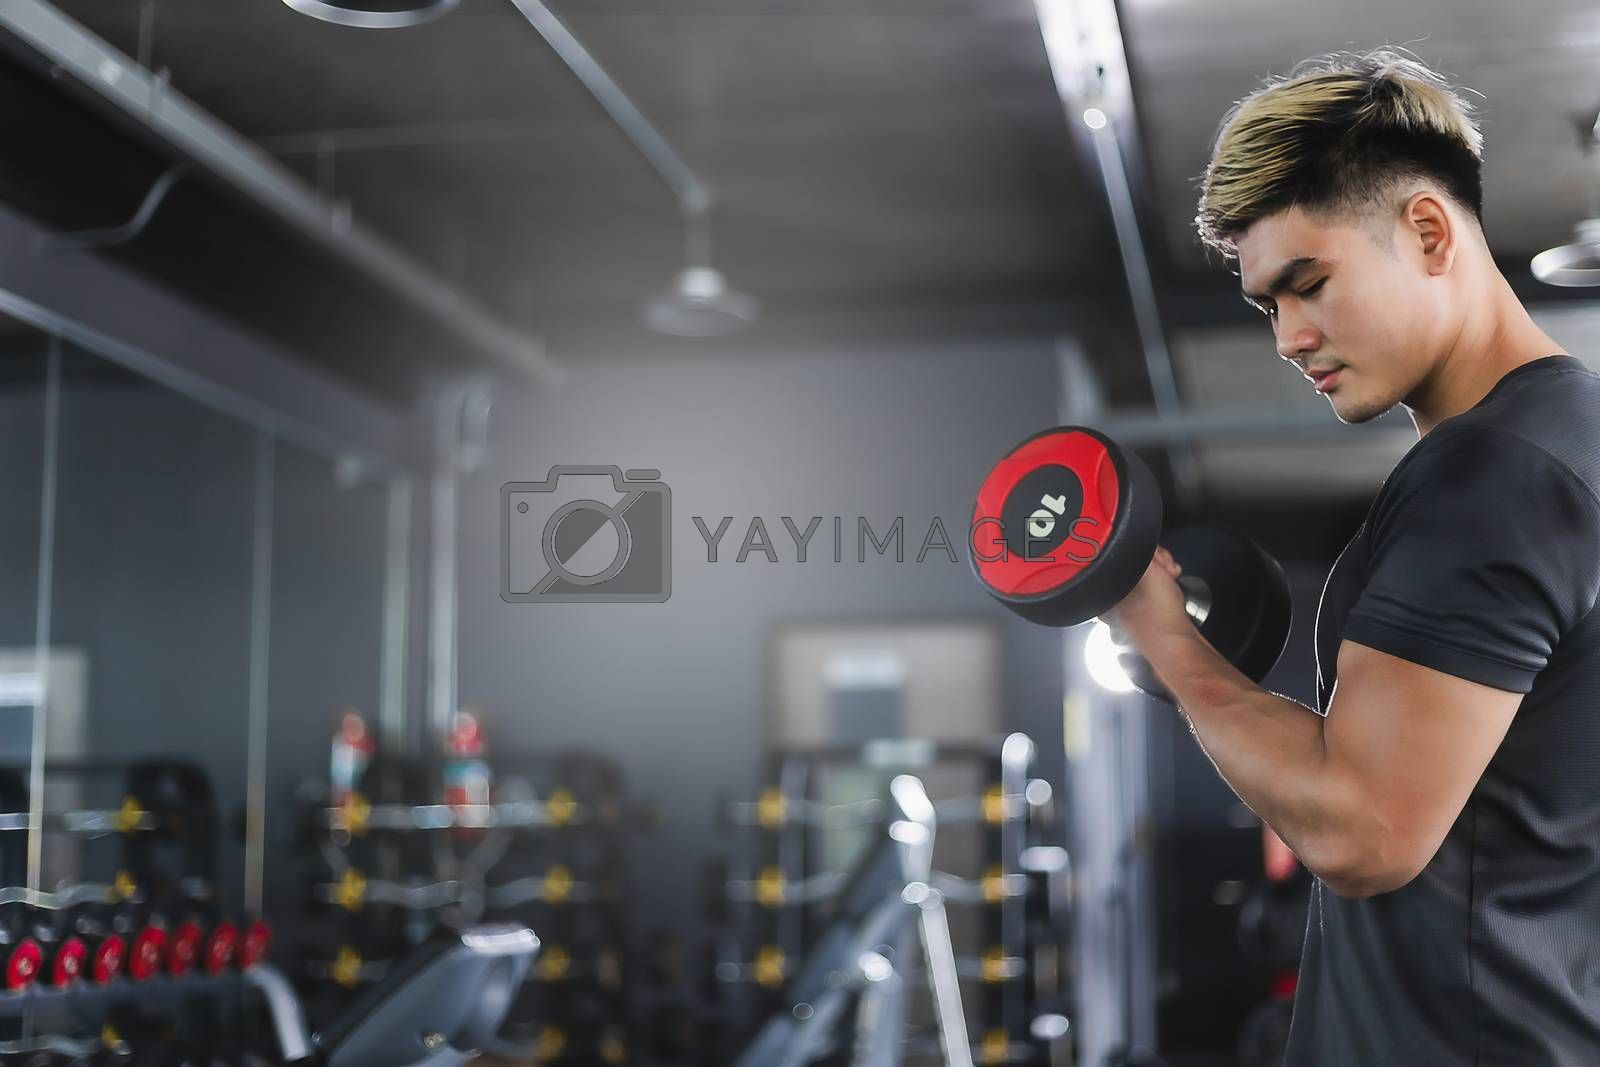 Asian man Bodybuilder with dumbbell weights power handsome athletic exercises.Metaphor Fitness and workout concept exercise Health lifestyle muscle body with take care of your health